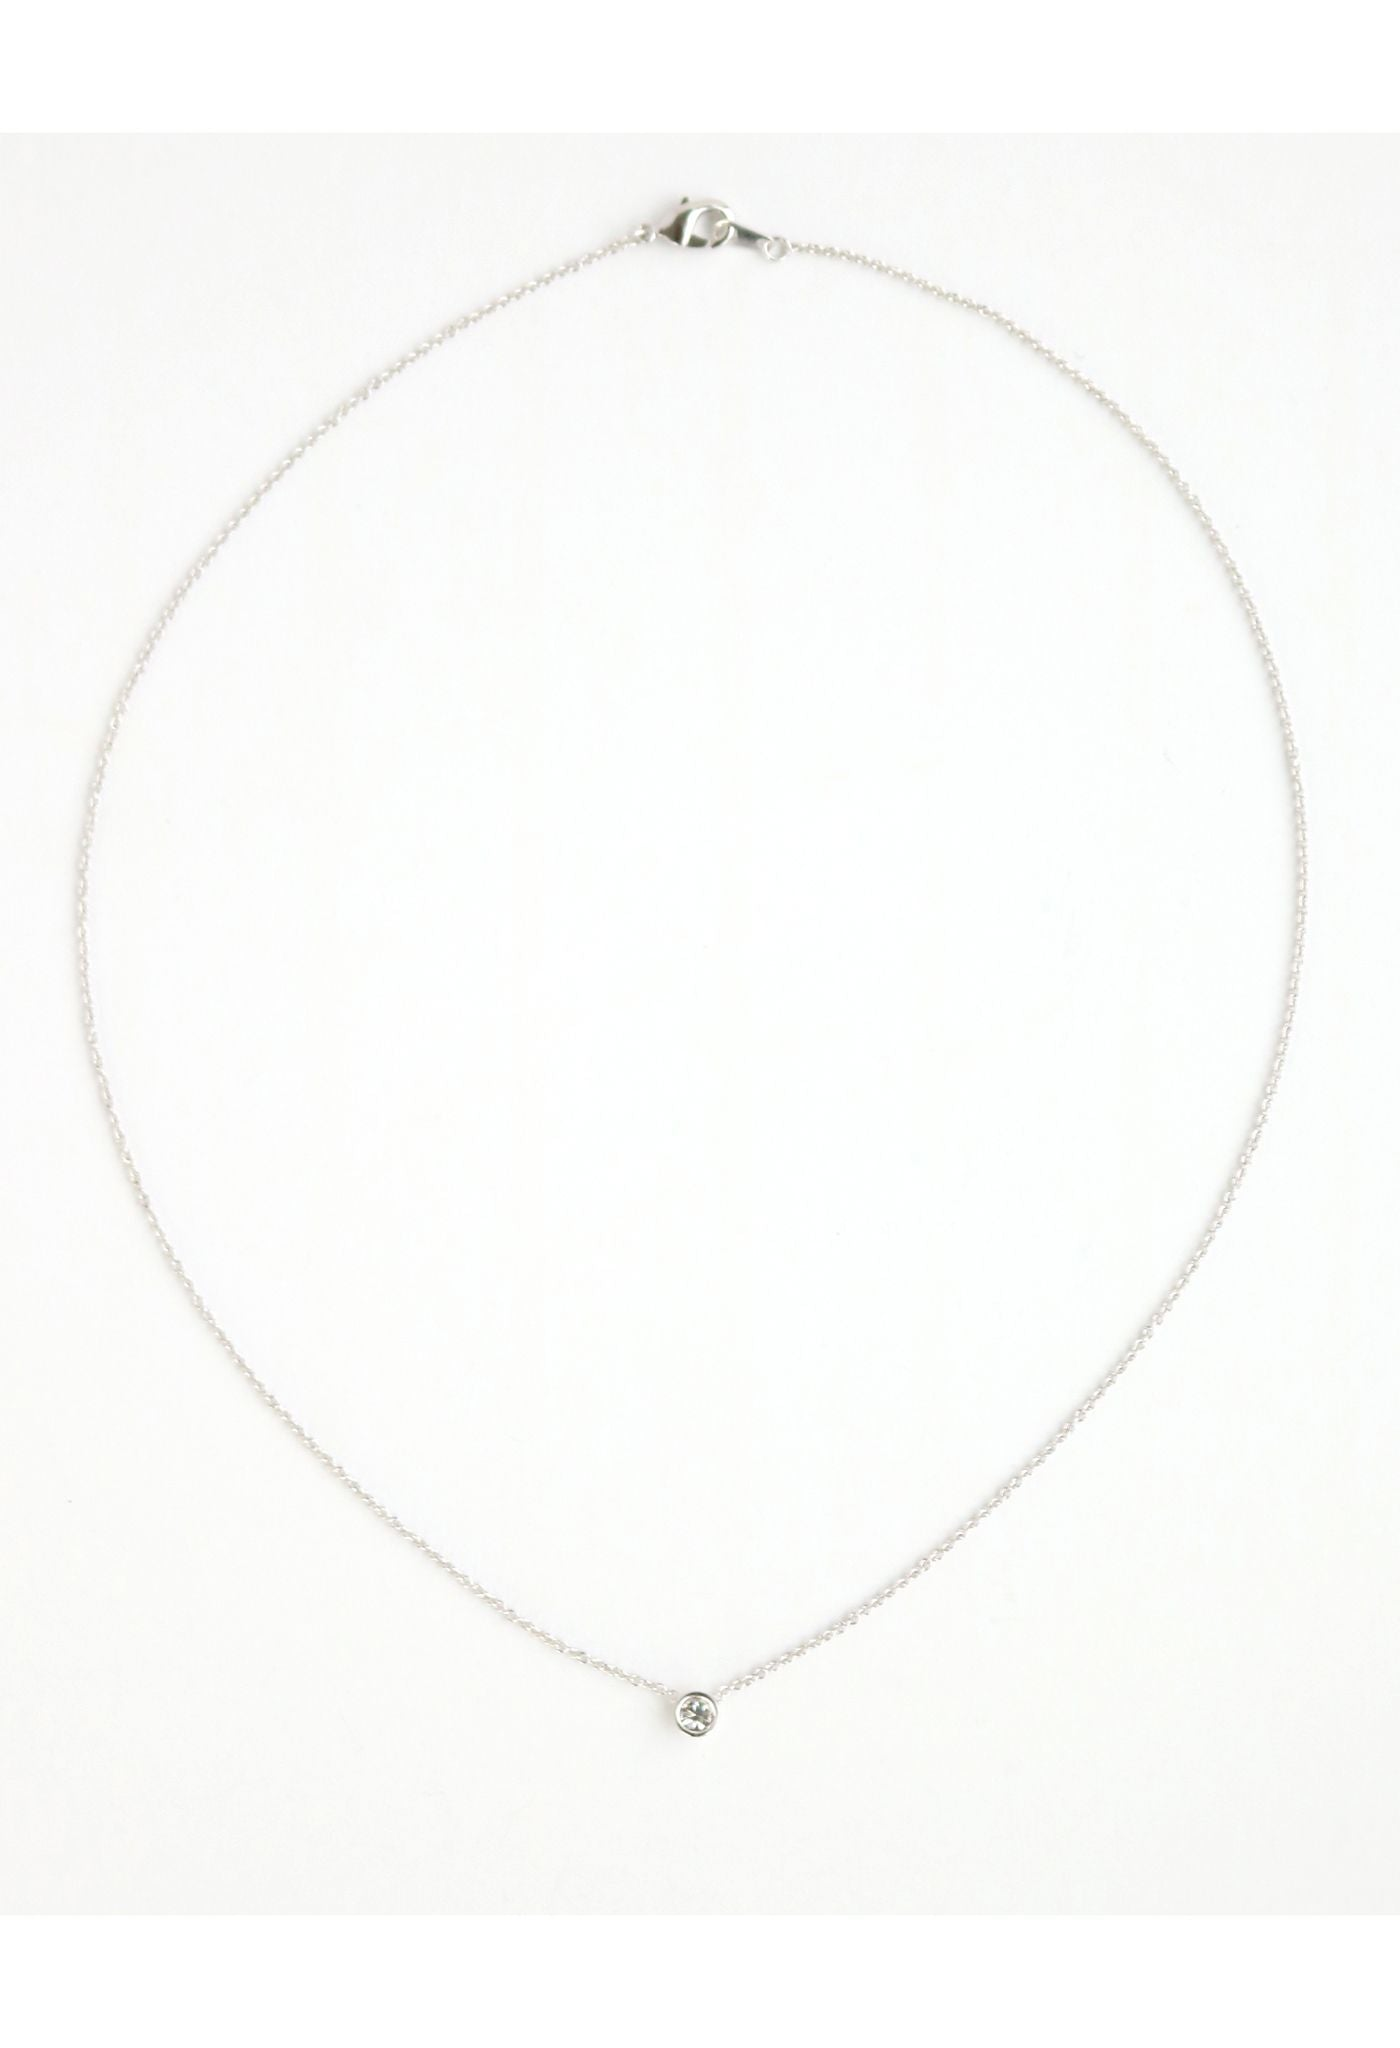 Lover's Tempo Necklace Solitaire - Silver